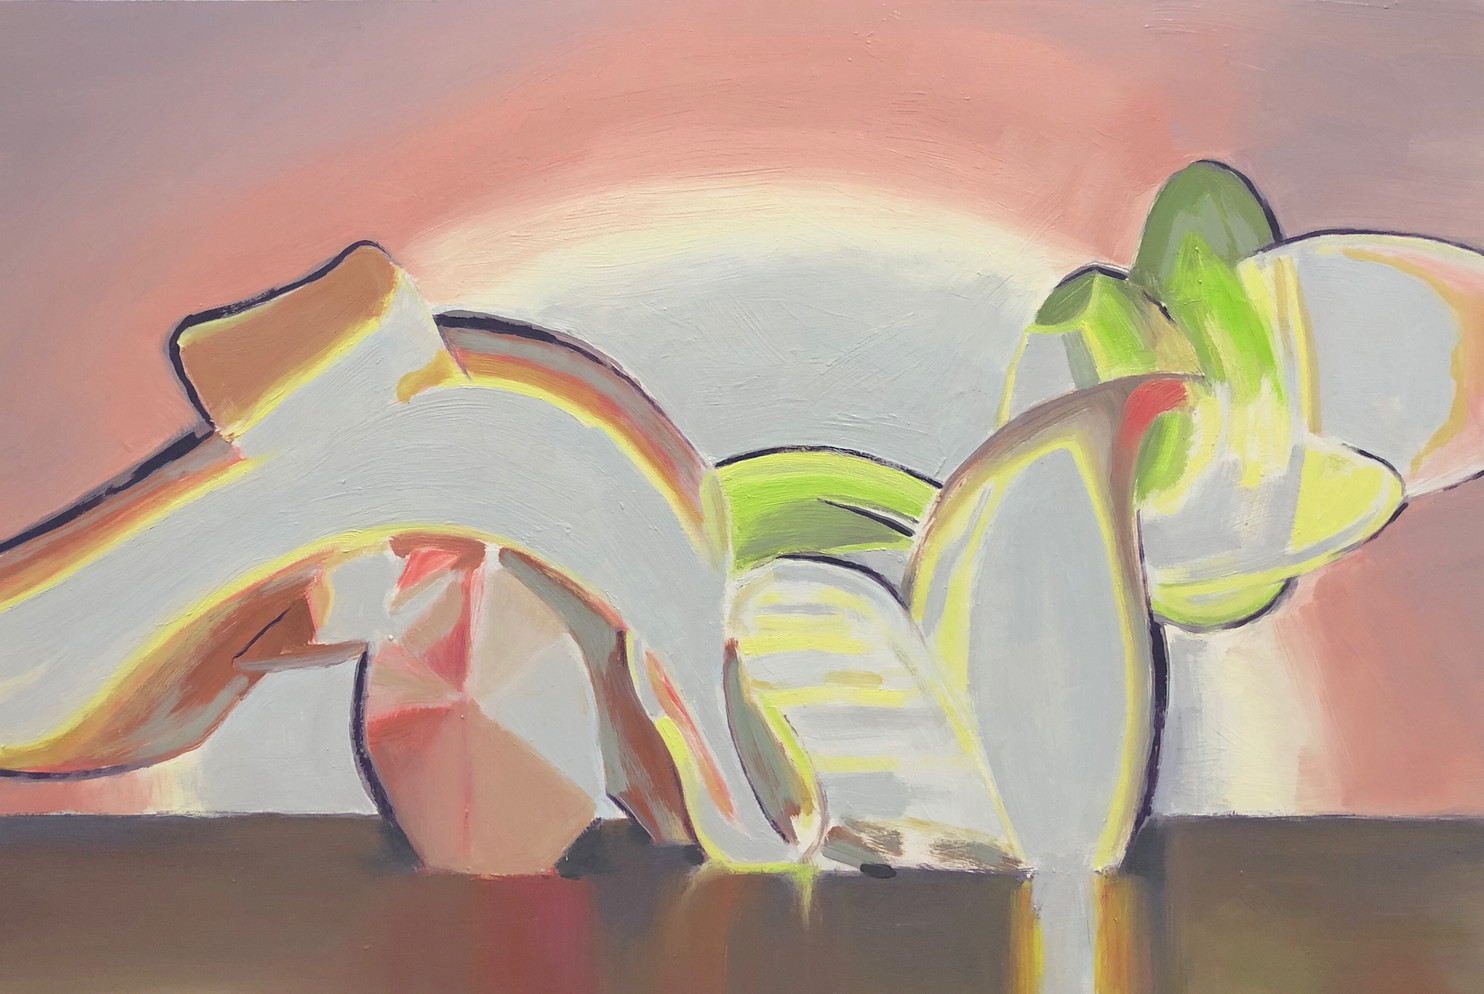 Pushing Spectres, 2018, oil on wood panel 40 x 60 cm  • Private collection